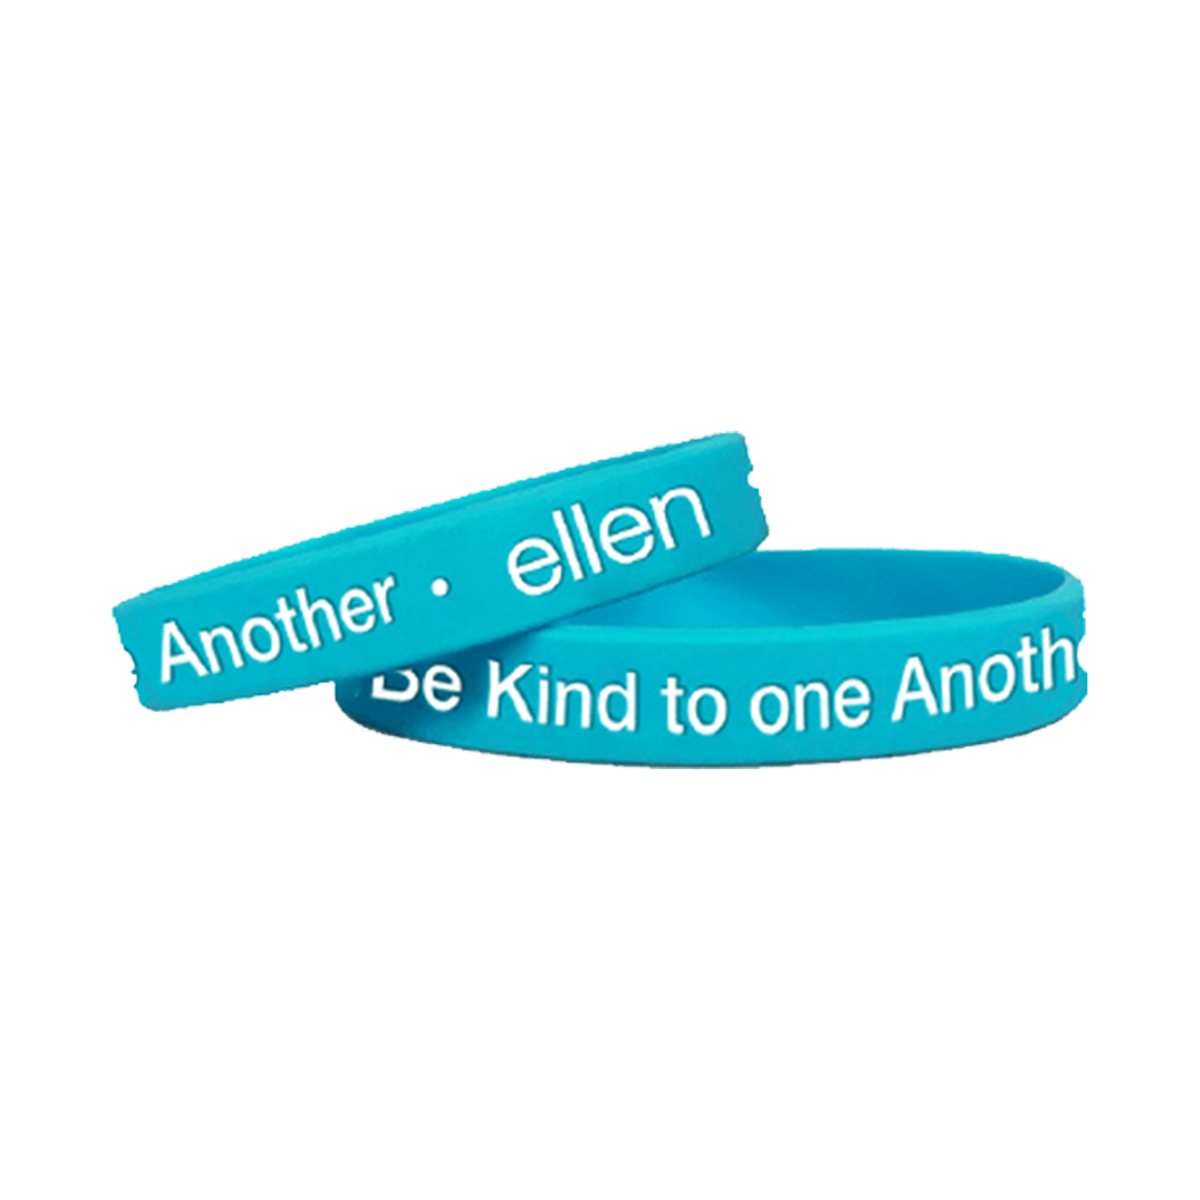 ellen Show Be Kind To One Another Bracelet - Blue